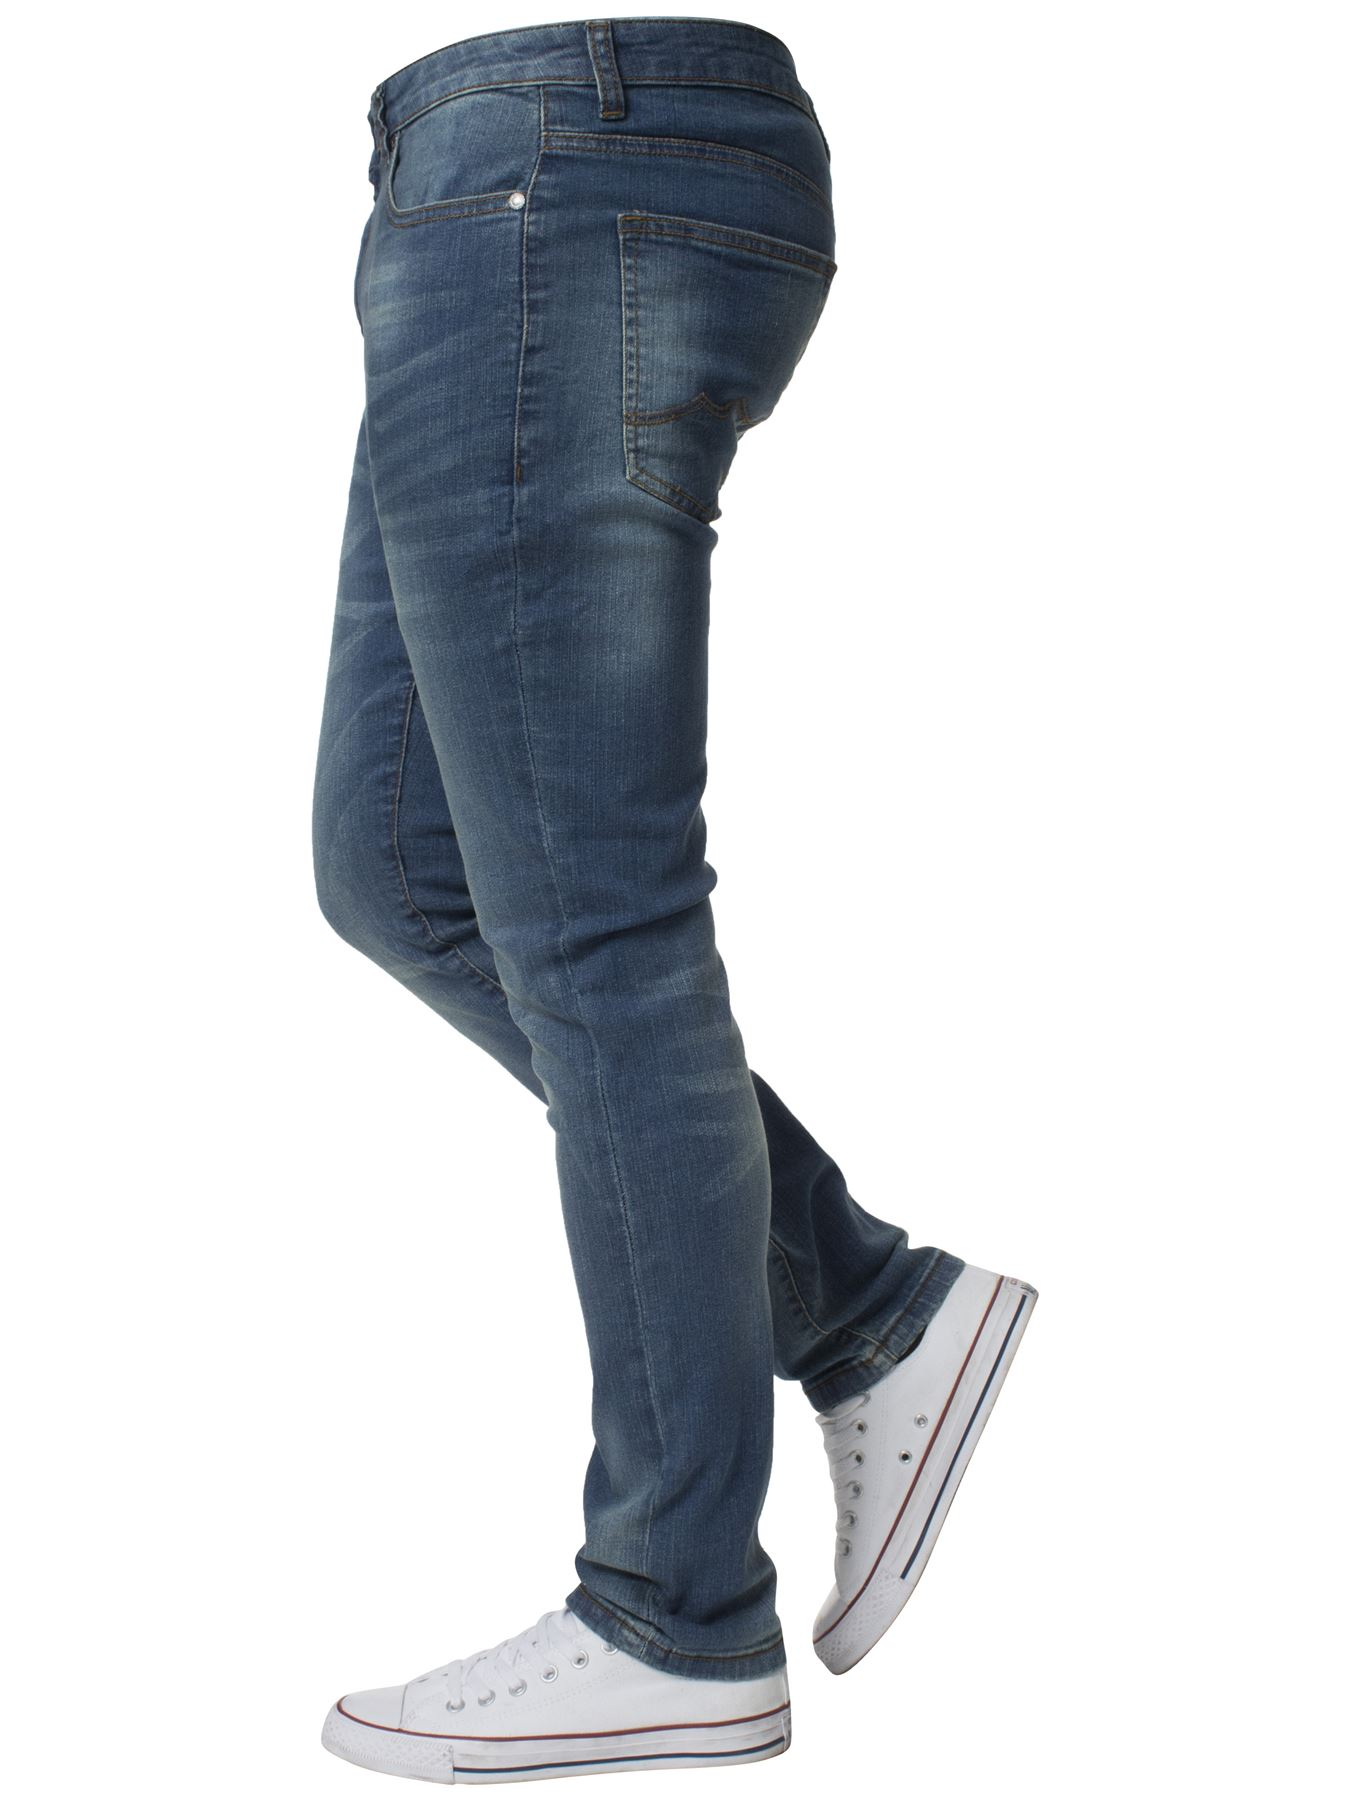 Kruze-Mens-Skinny-Stretch-Flex-Denim-Jeans-Slim-Fit-Trouser-Pants-Big-King-Sizes thumbnail 25